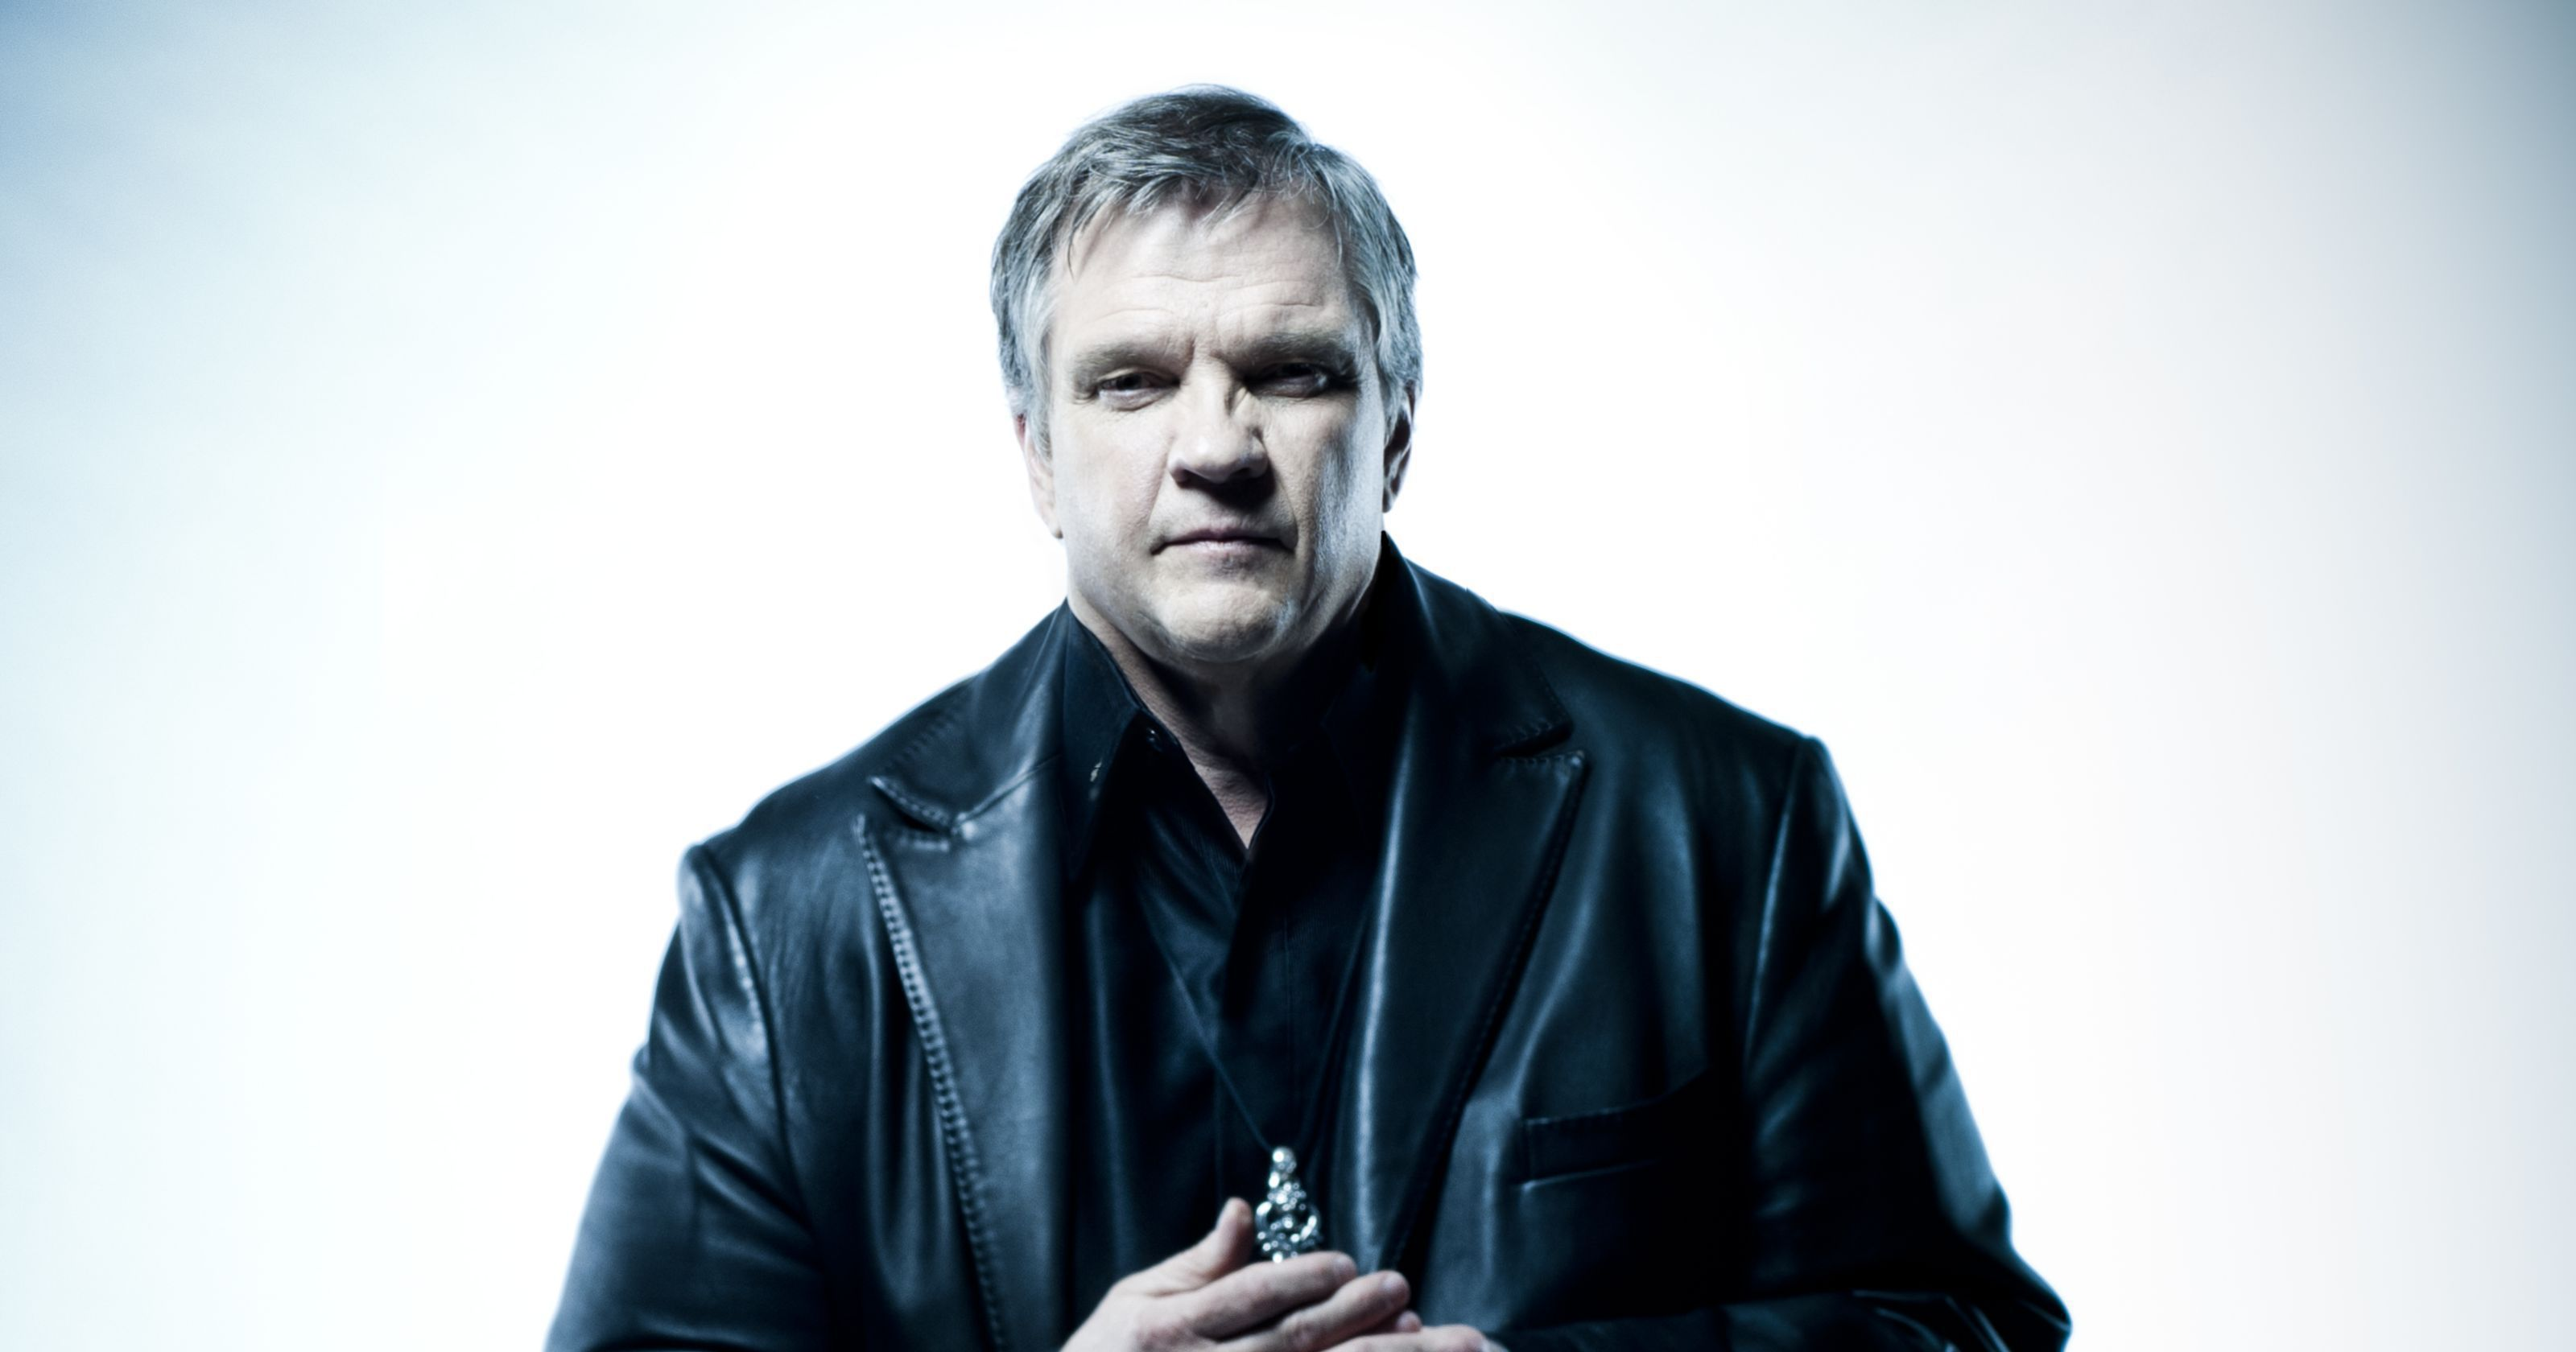 Meat Loaf Wallpapers Hd